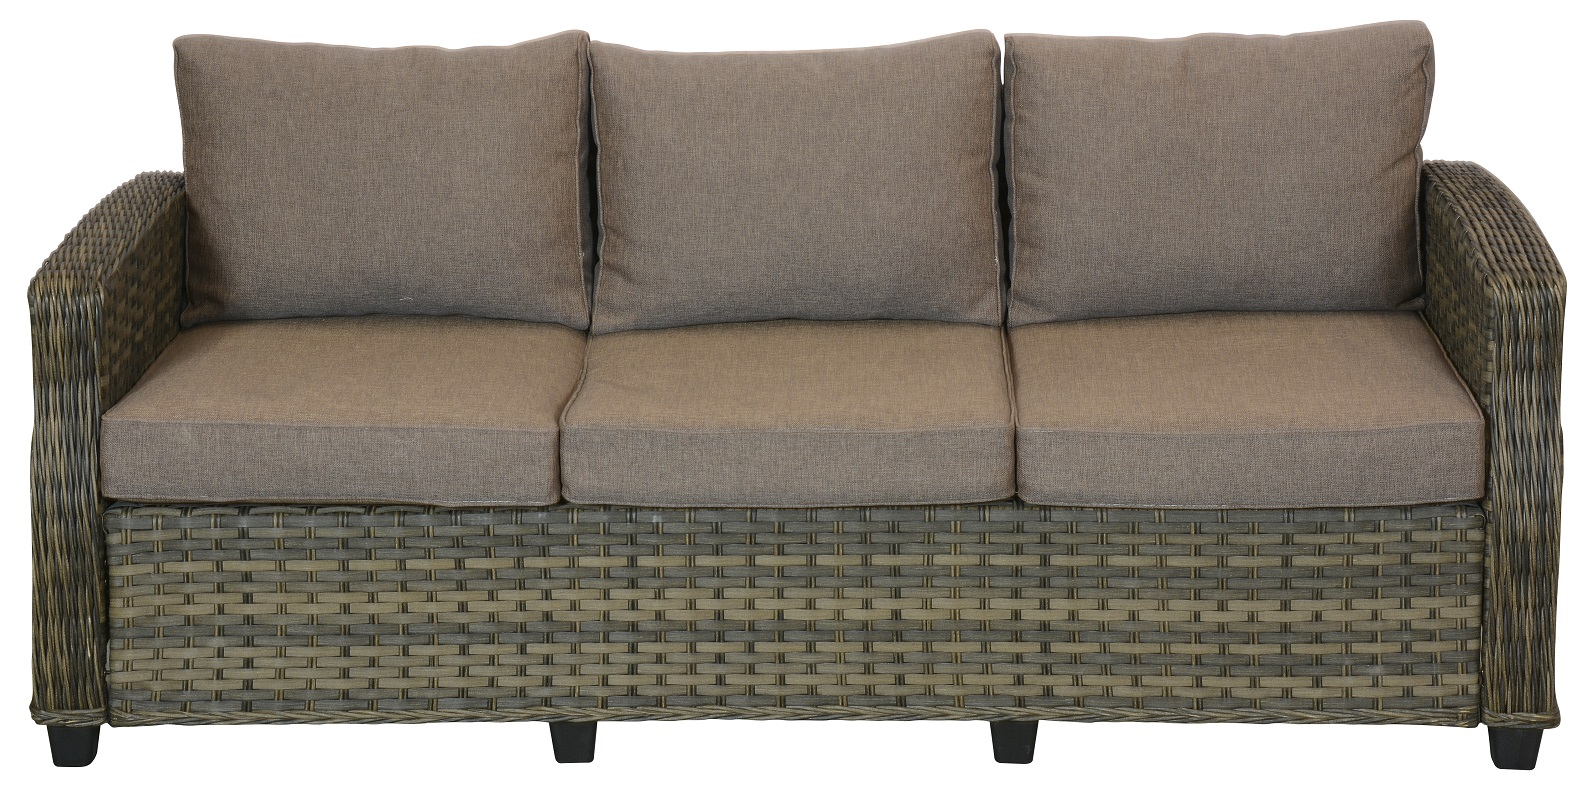 N/A øland havesofa 3 pers. - taupe fra unoliving.com